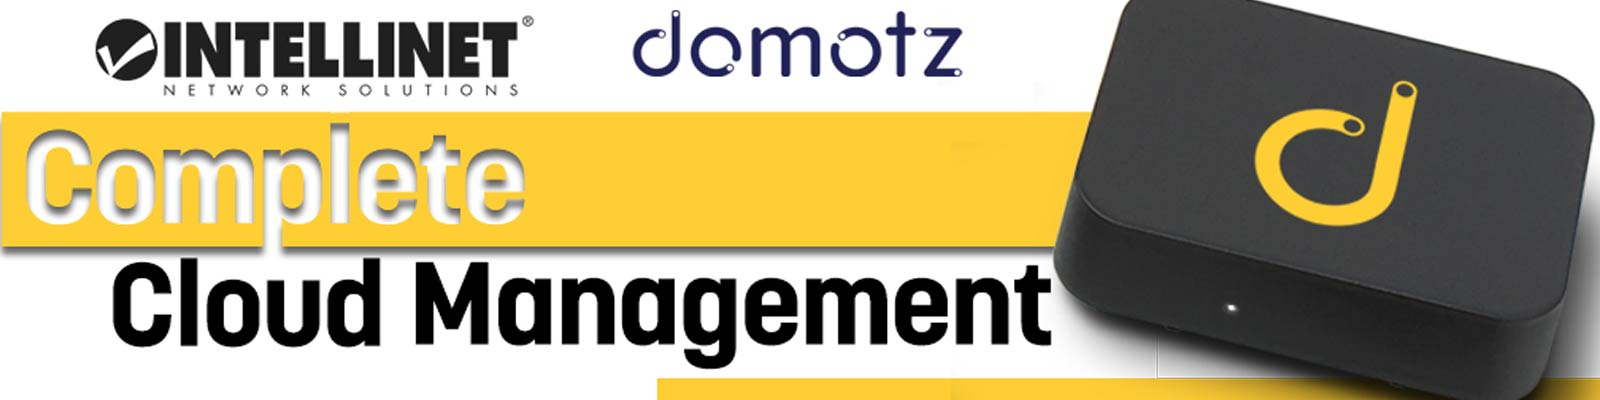 Intellinet Domotz Cooperation